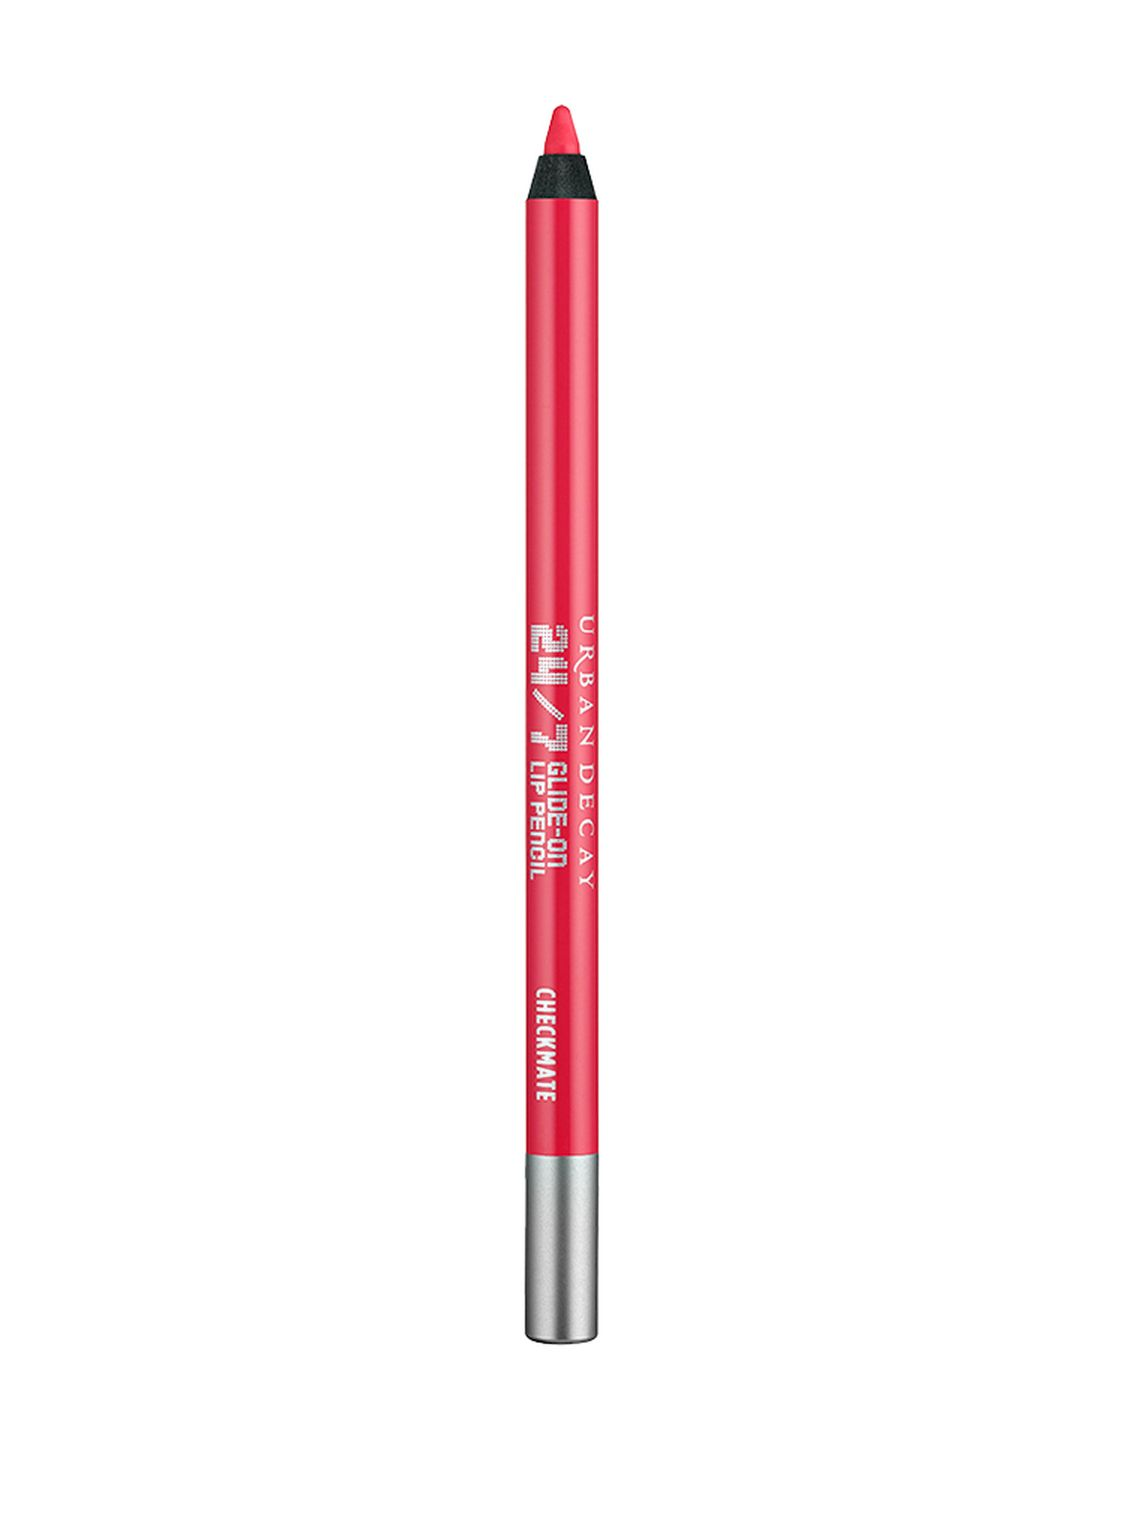 Urban Decay 24/7 Lip Pencil   (14,99 € / 1 g)